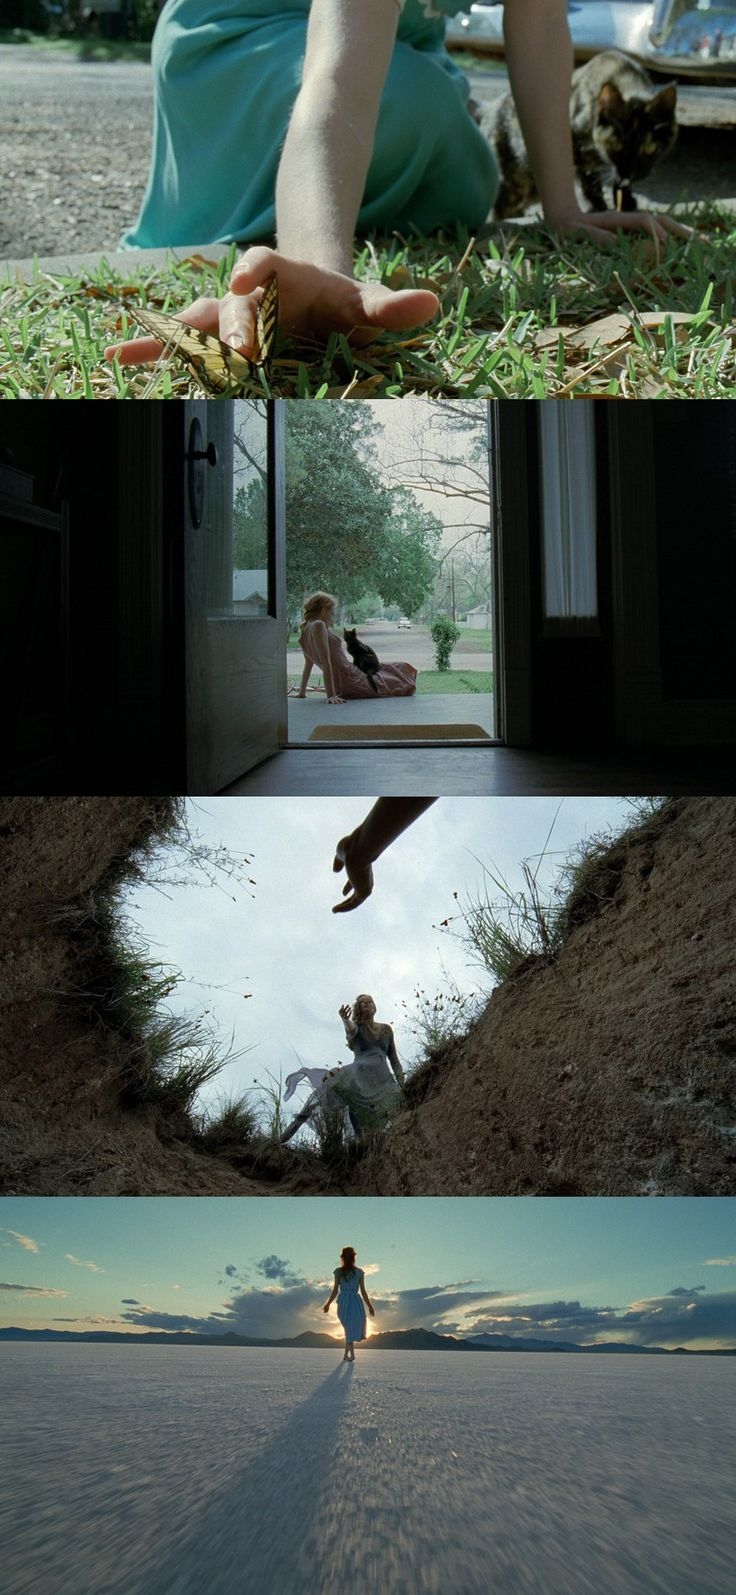 moviesinframes:    The Tree of Life, 2011(dir. Terrence Malick)